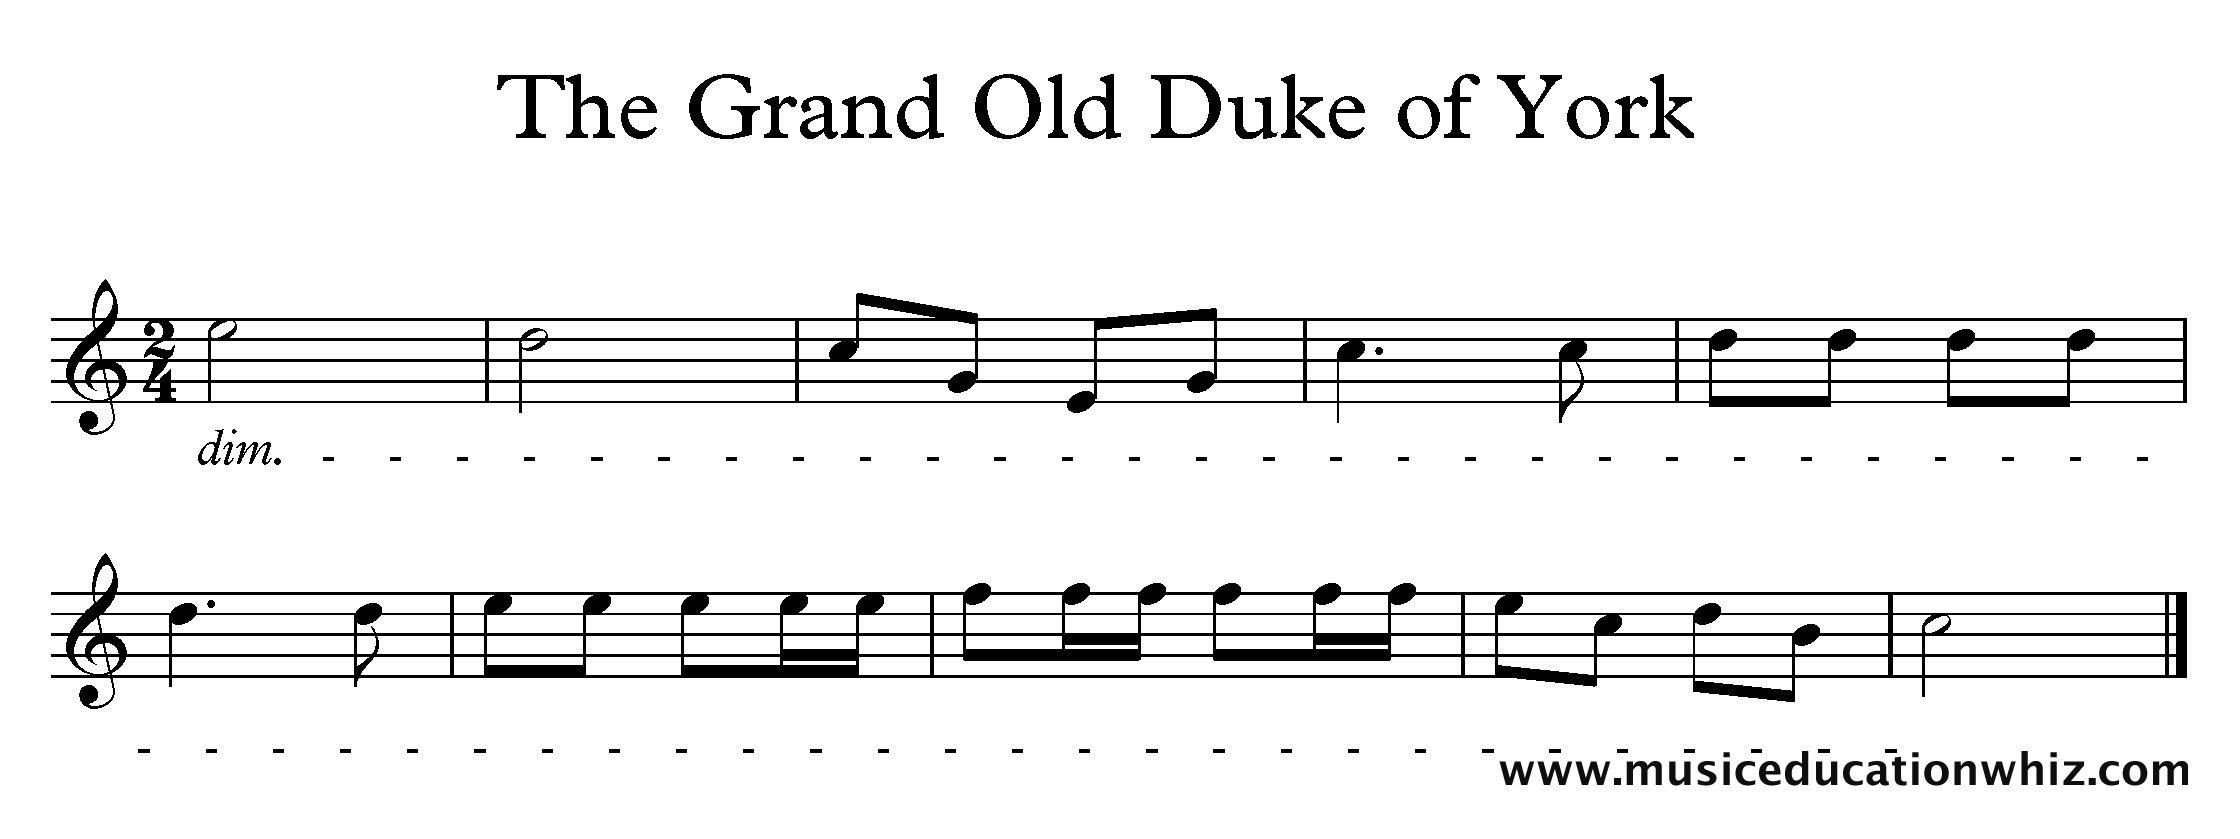 The Grand Old Duke of York melody with a dim. followed by a dashed line to the end.